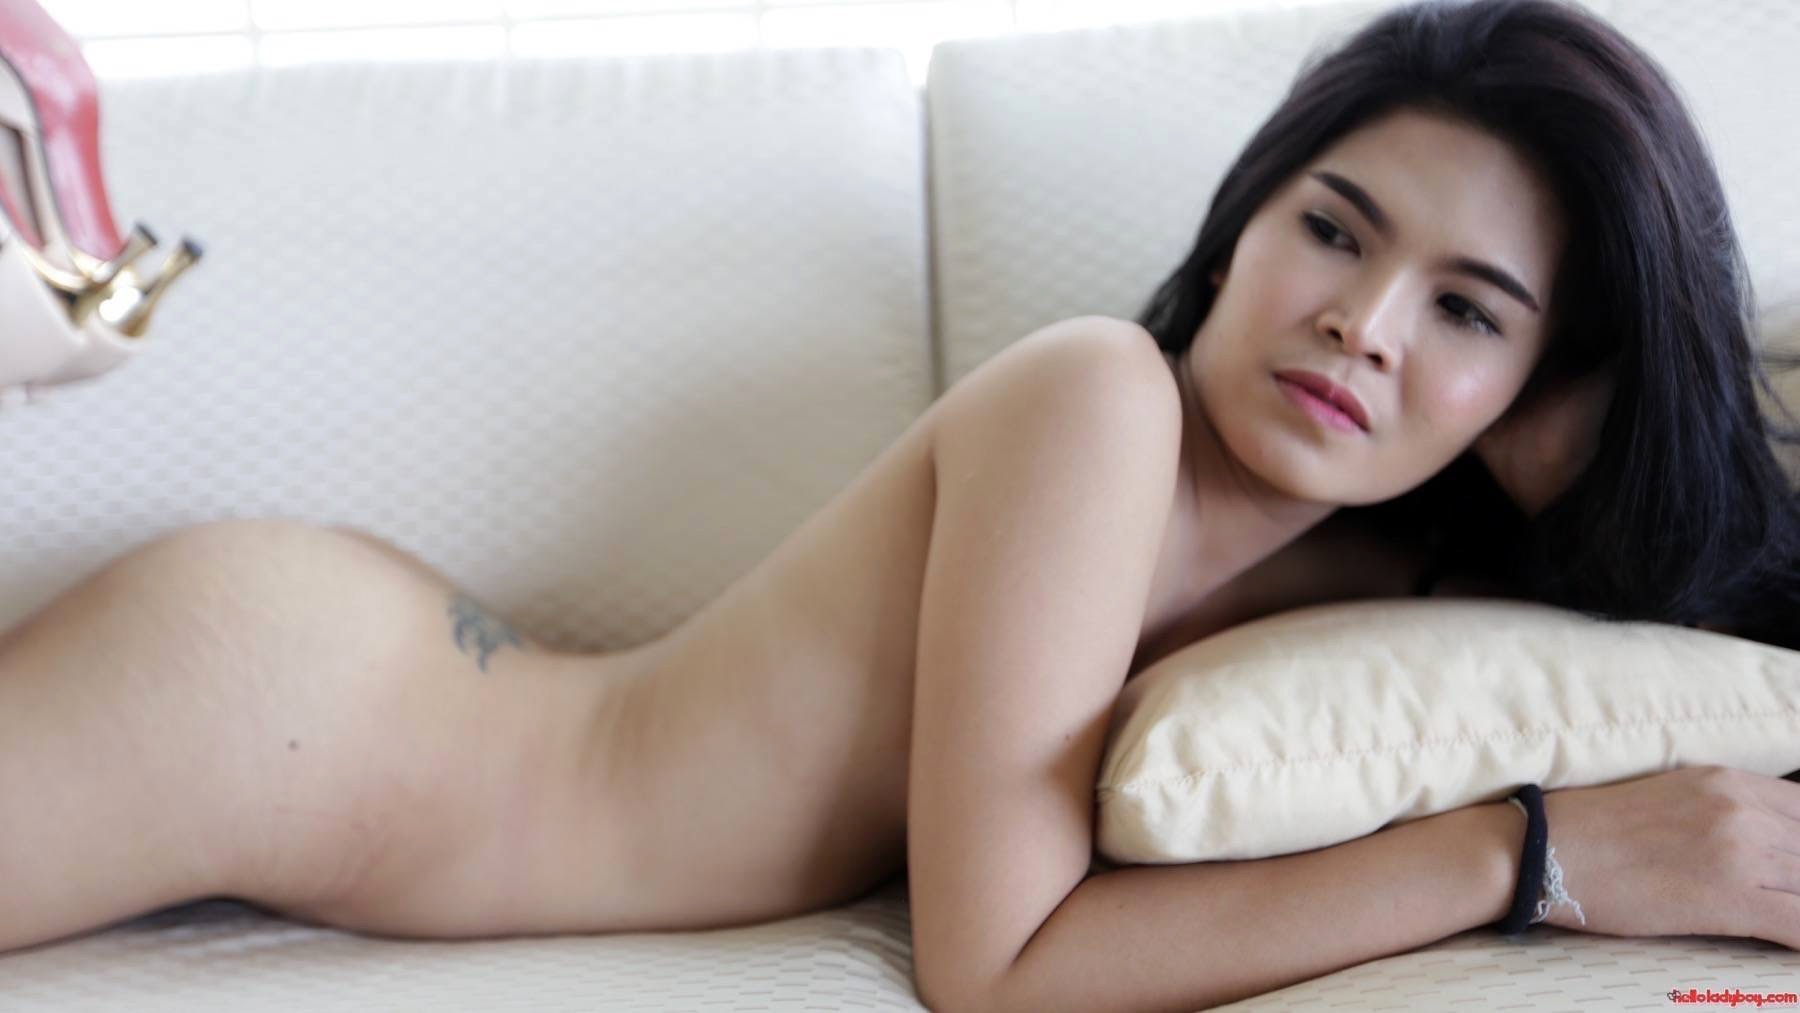 23 Year Old Voluptuous And Hungry Asian TGirl Gets A Facial From White Tourist